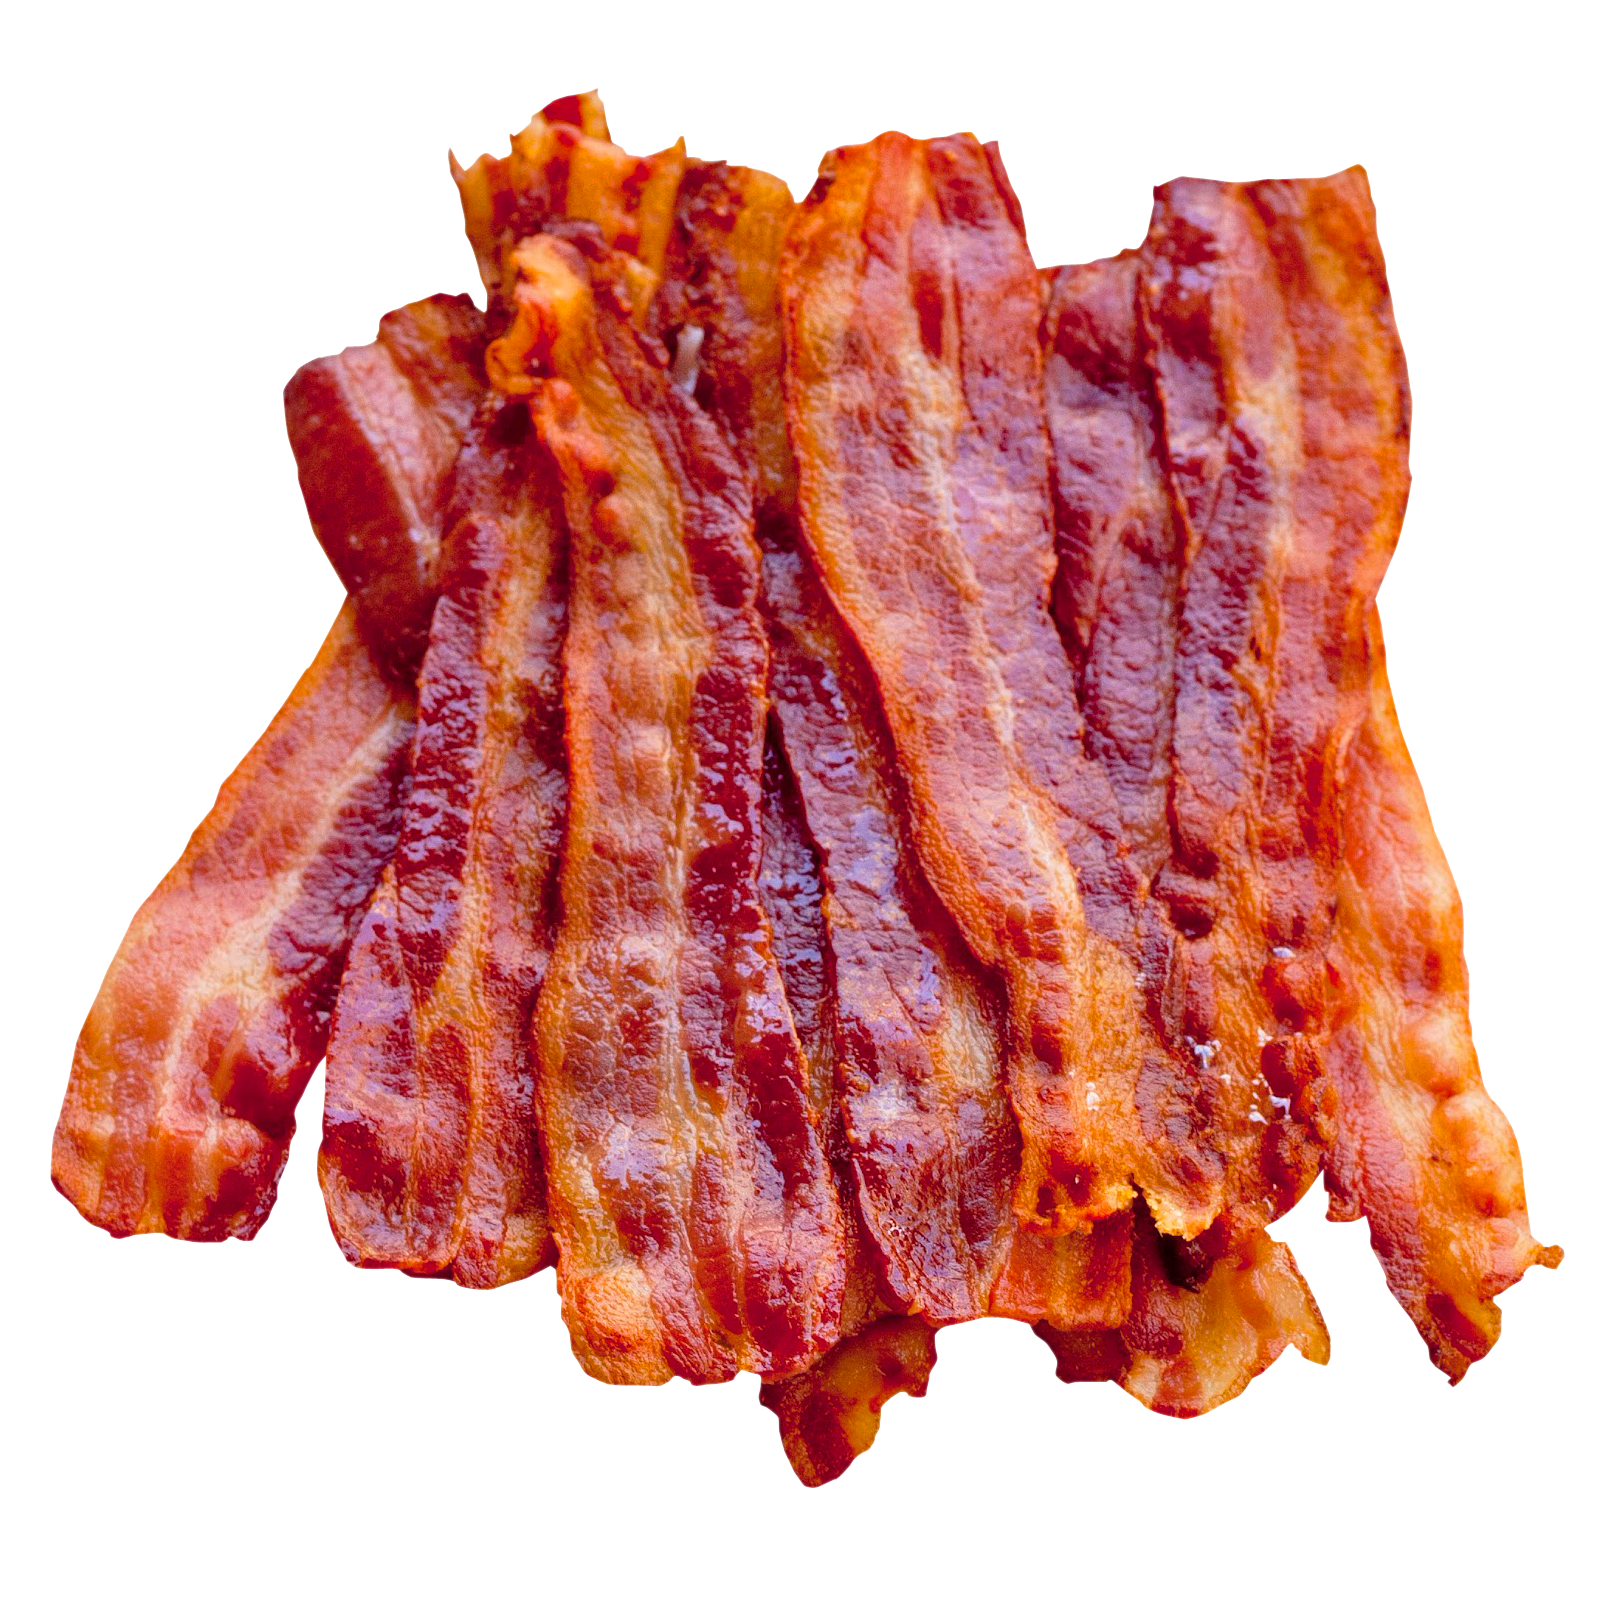 Bacon PNG-PlusPNG.com-1600 - Bacon PNG